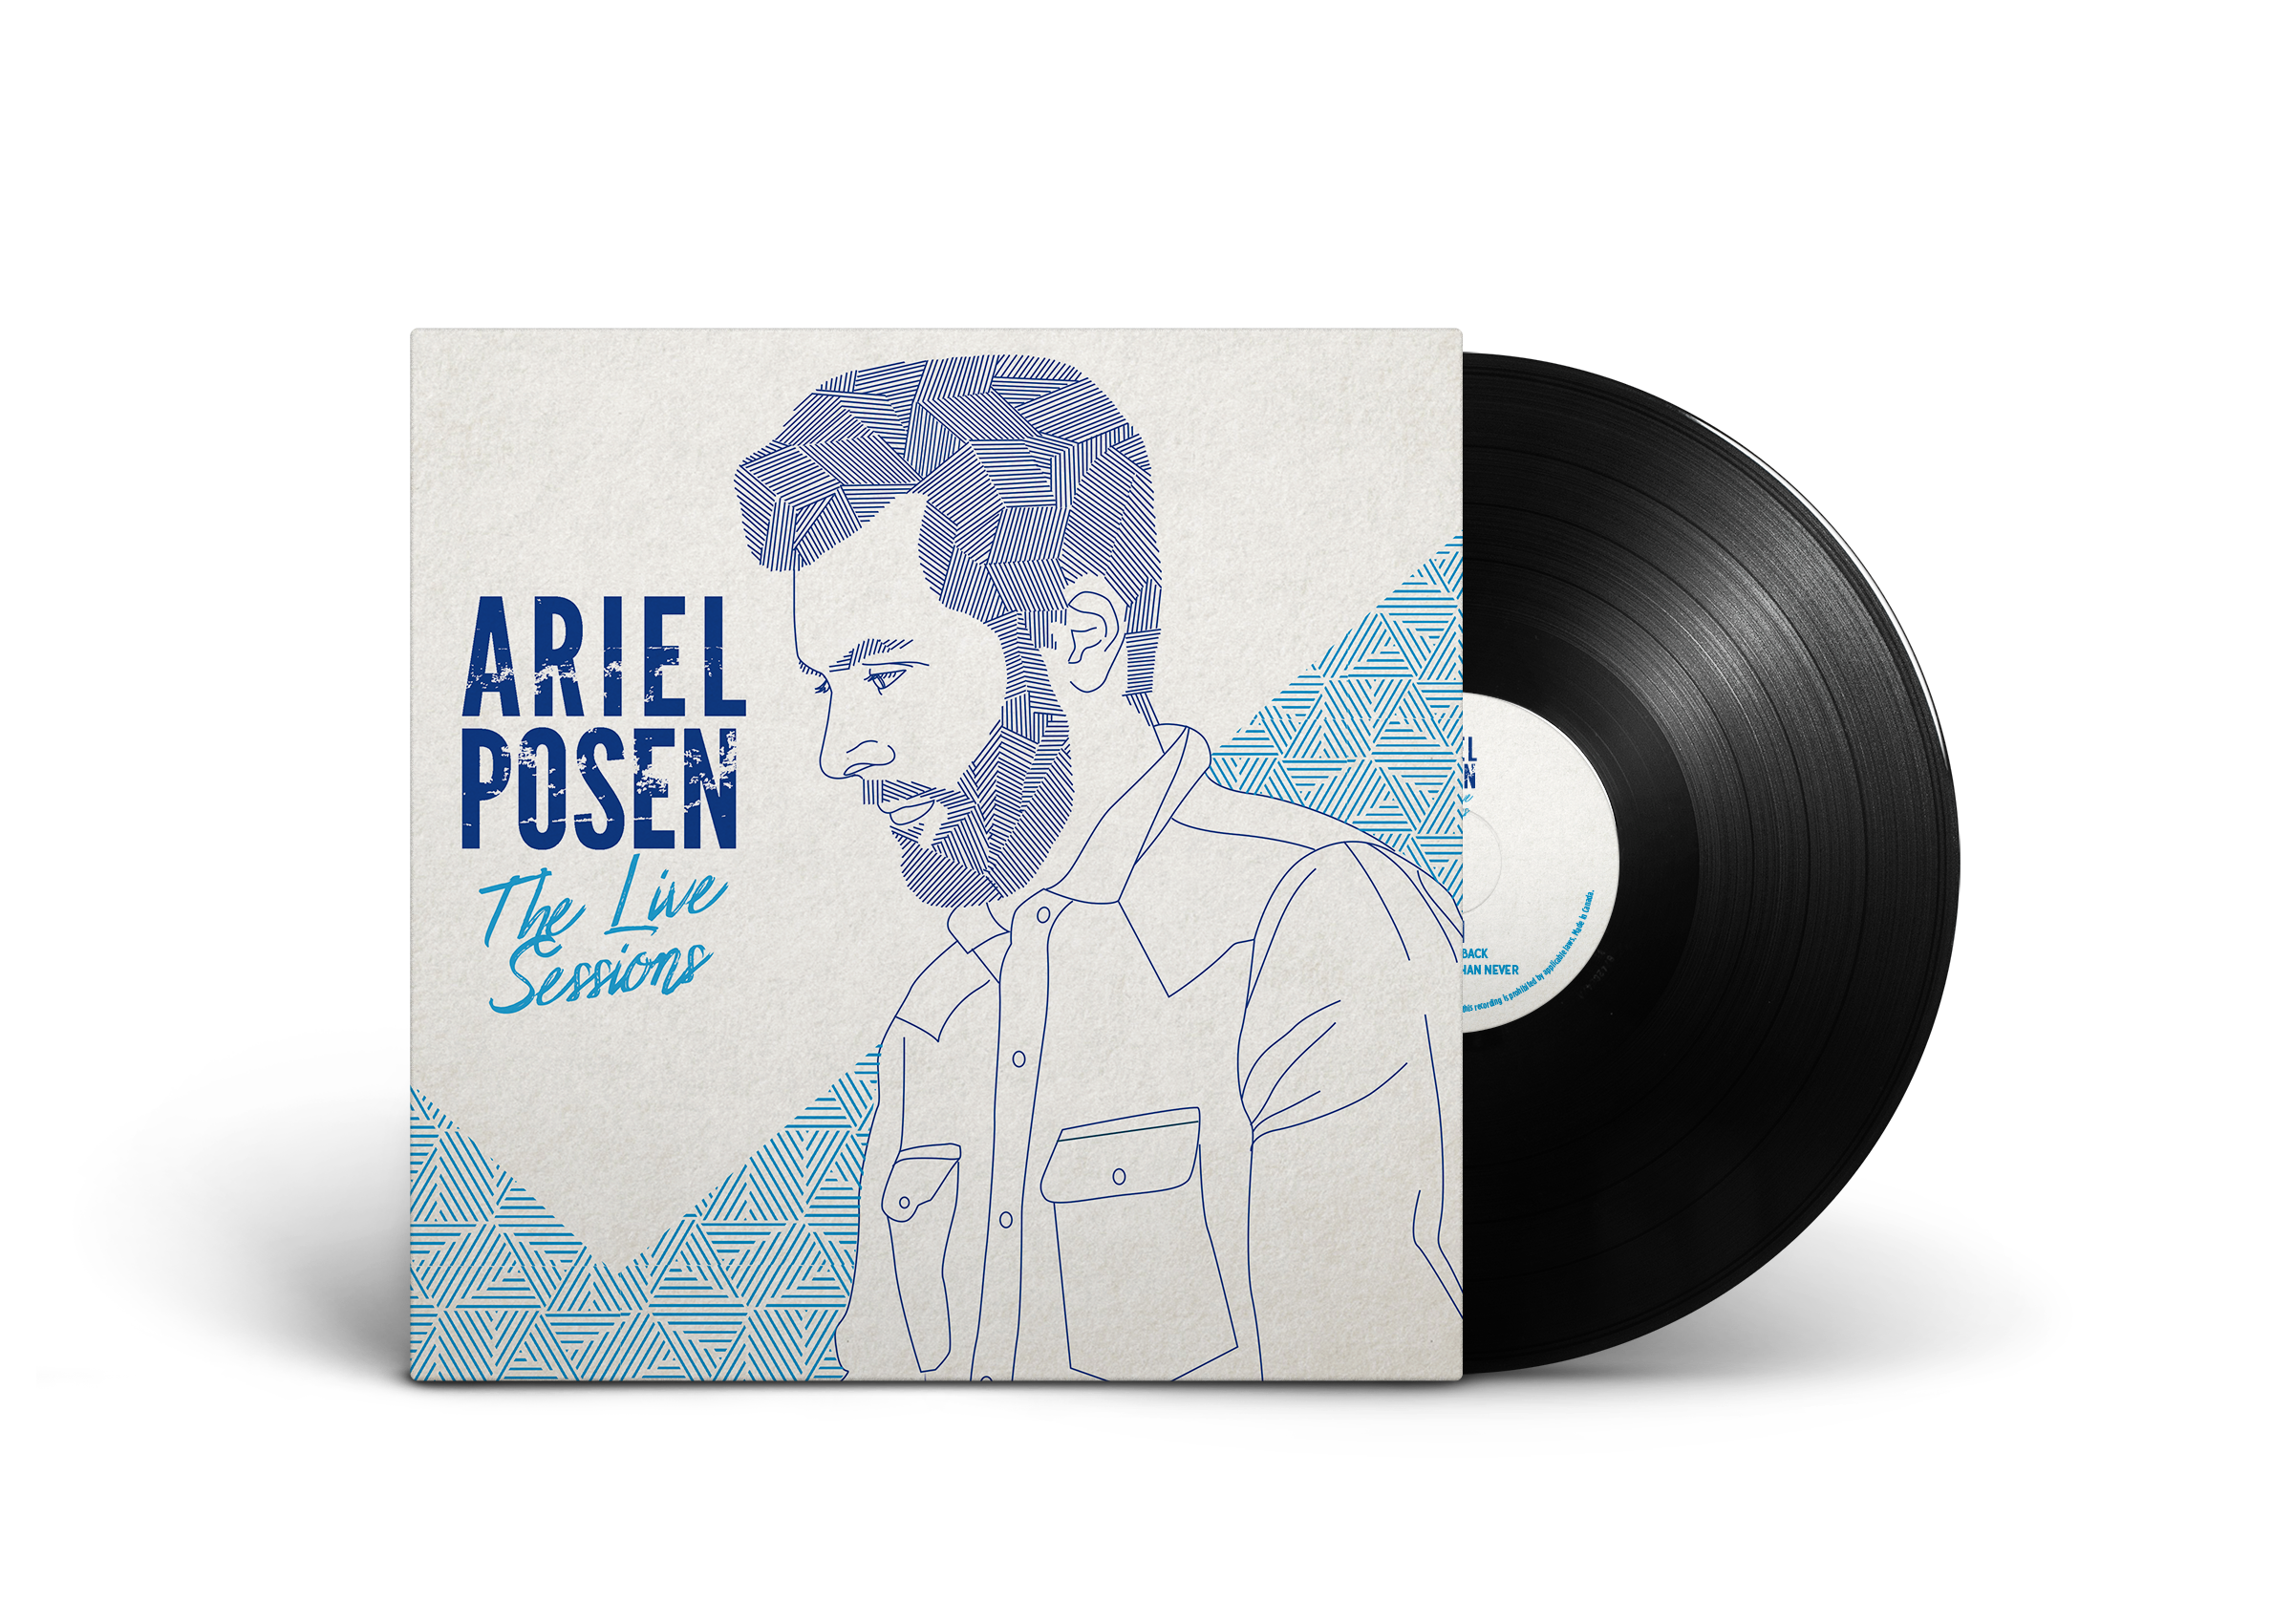 Ariel Posen — The Live Sessions LP